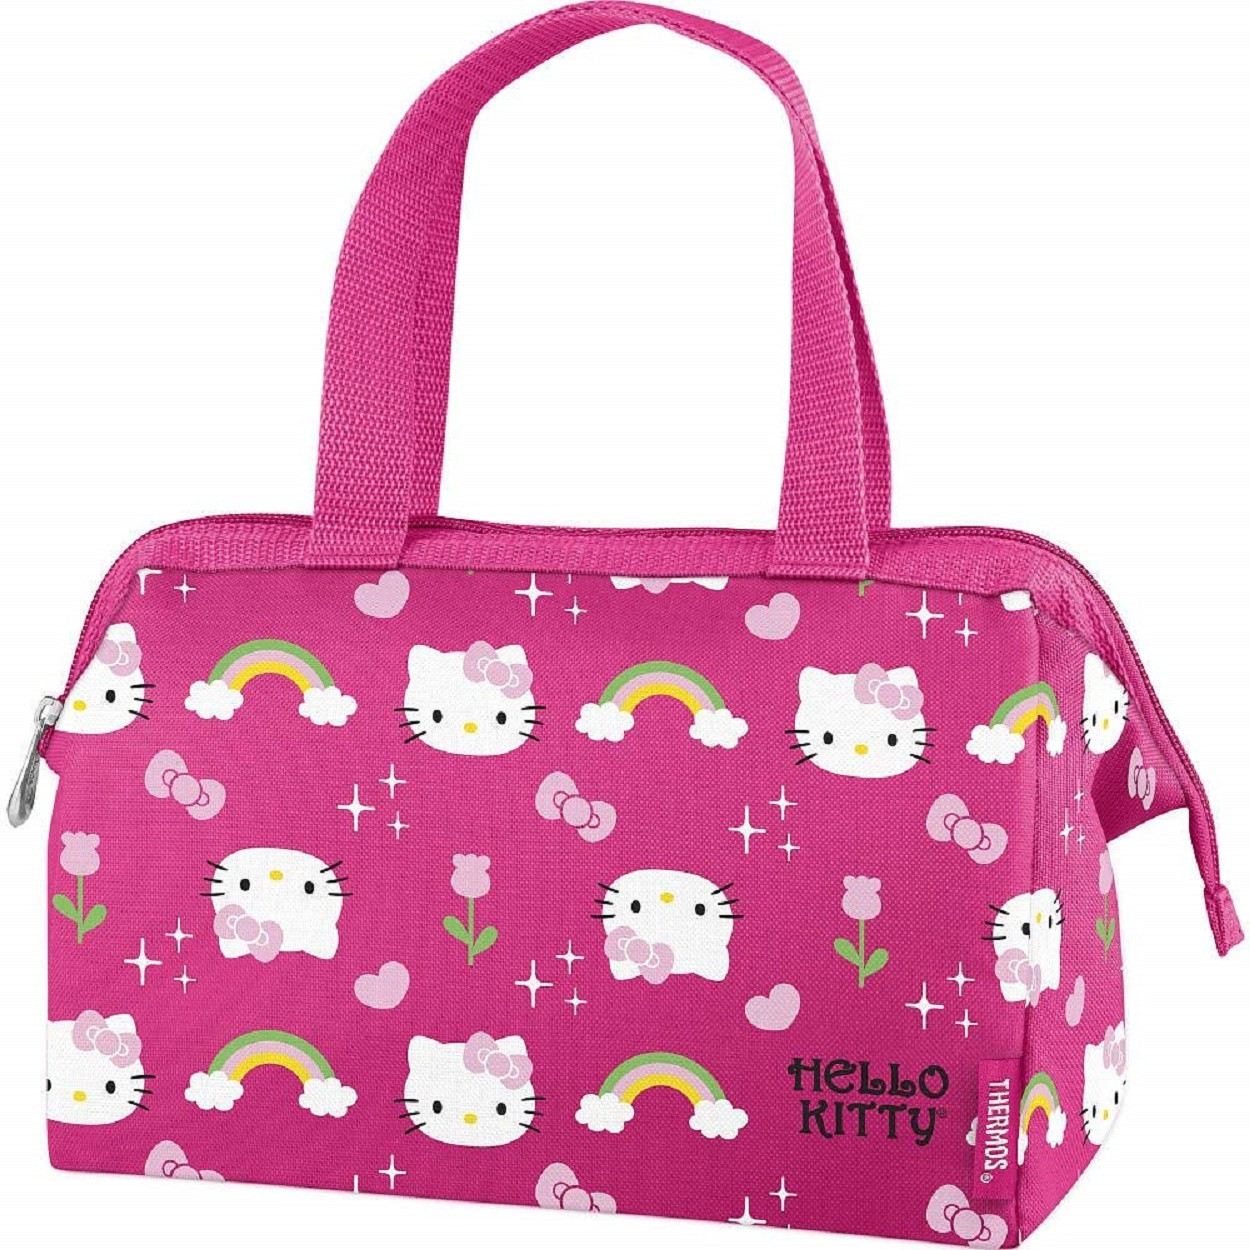 ae989f835 Hello Kitty Lunch Box - Pink w Rainbows | Partytoyz.com